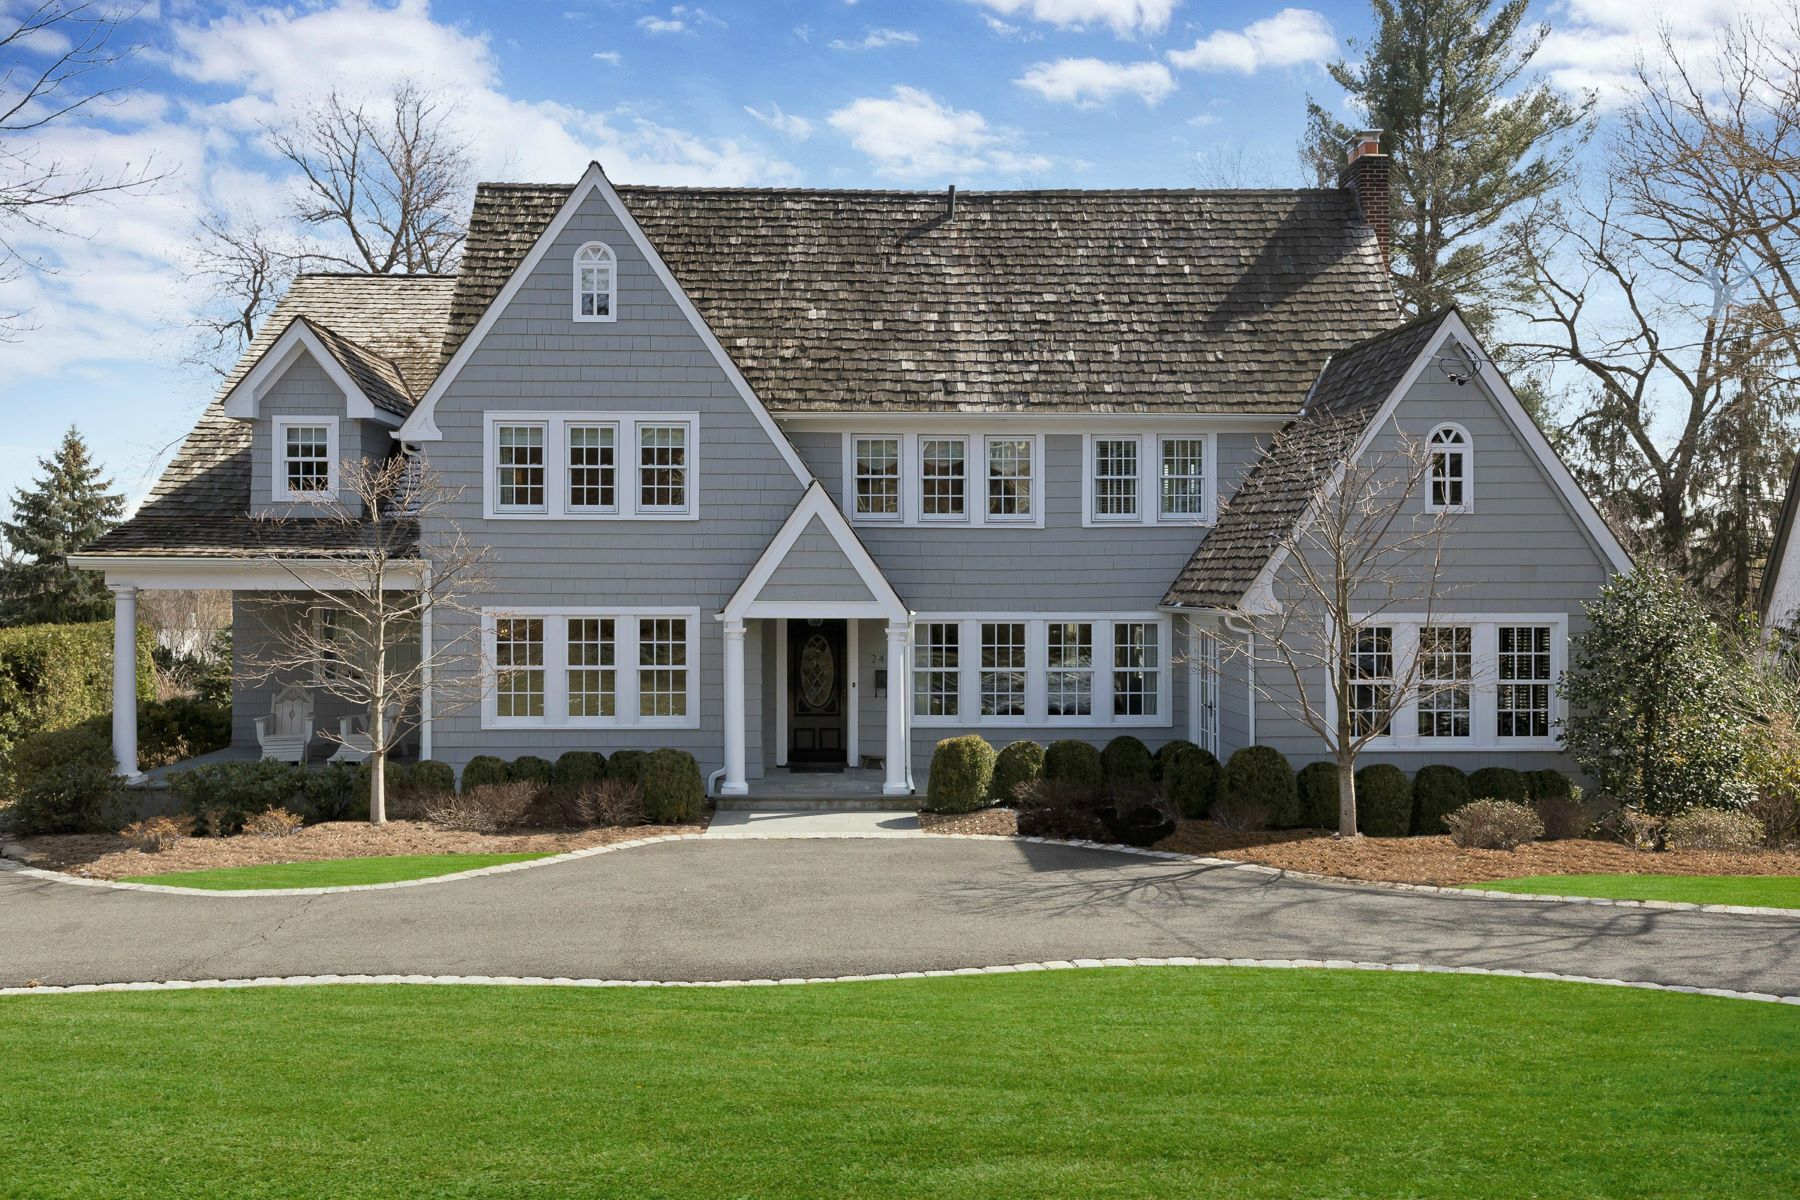 Single Family Home for Sale at Dream No Further...Hampton's Style and Sophistication Abound... 241 Highland Avenue Ridgewood, 07450 United States